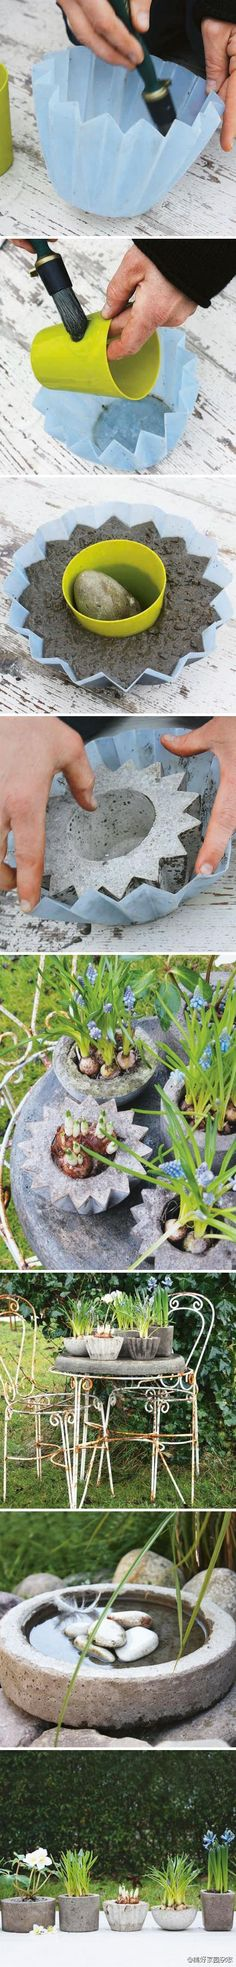 Do it yourself garden decoration - 13 ideas with instructions - DIY garden deco. : Do it yourself garden decoration - 13 ideas with instructions - DIY garden deco. Garden Crafts, Diy Garden Decor, Garden Projects, Garden Art, Diy Crafts, Diy Projects, Diy Decoration, Garden Oasis, Mosaic Projects